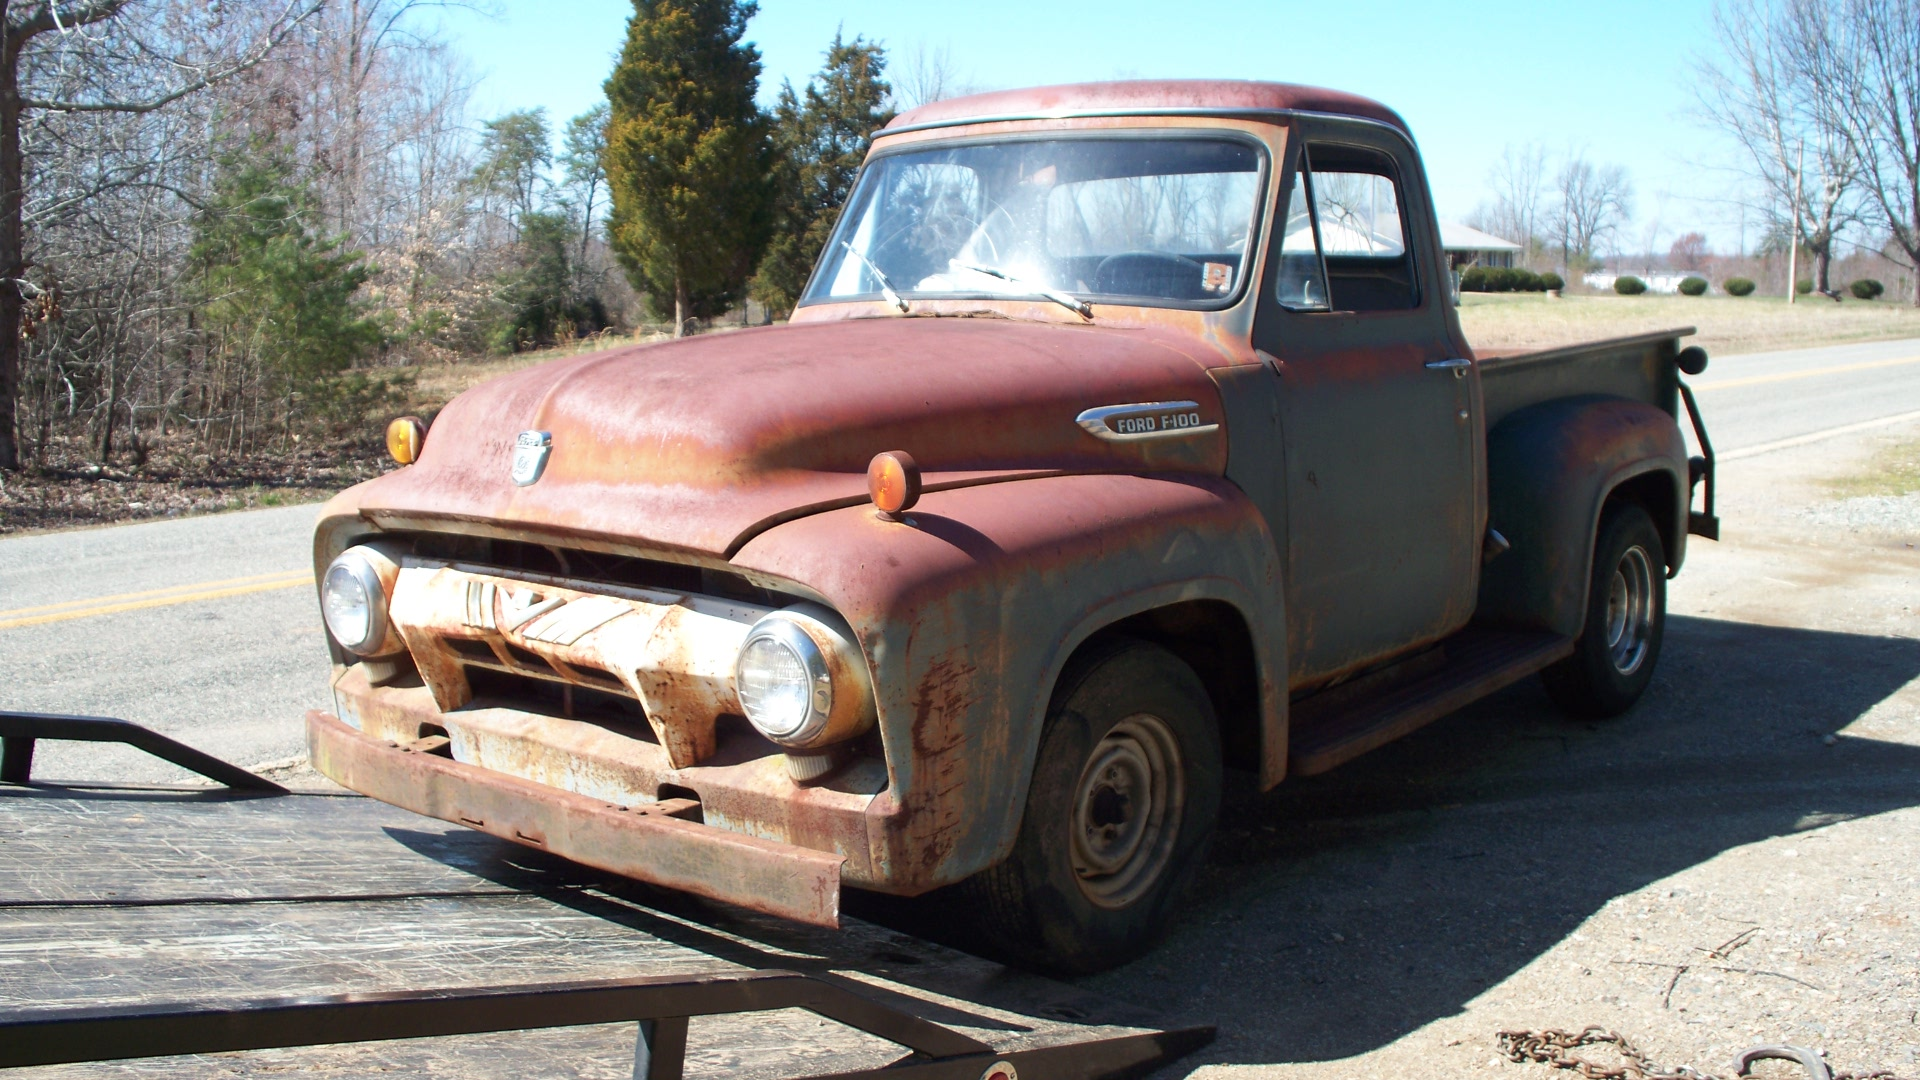 Flashback F10039s New Arrivals Of Whole Trucks Parts Or 1964 Ford Short Bed Another Clean 69 Long F 250 From Nevada With Very Nice Sheet Metal Hood Was Already Missing Only Truck Brought In 03 08 13 All